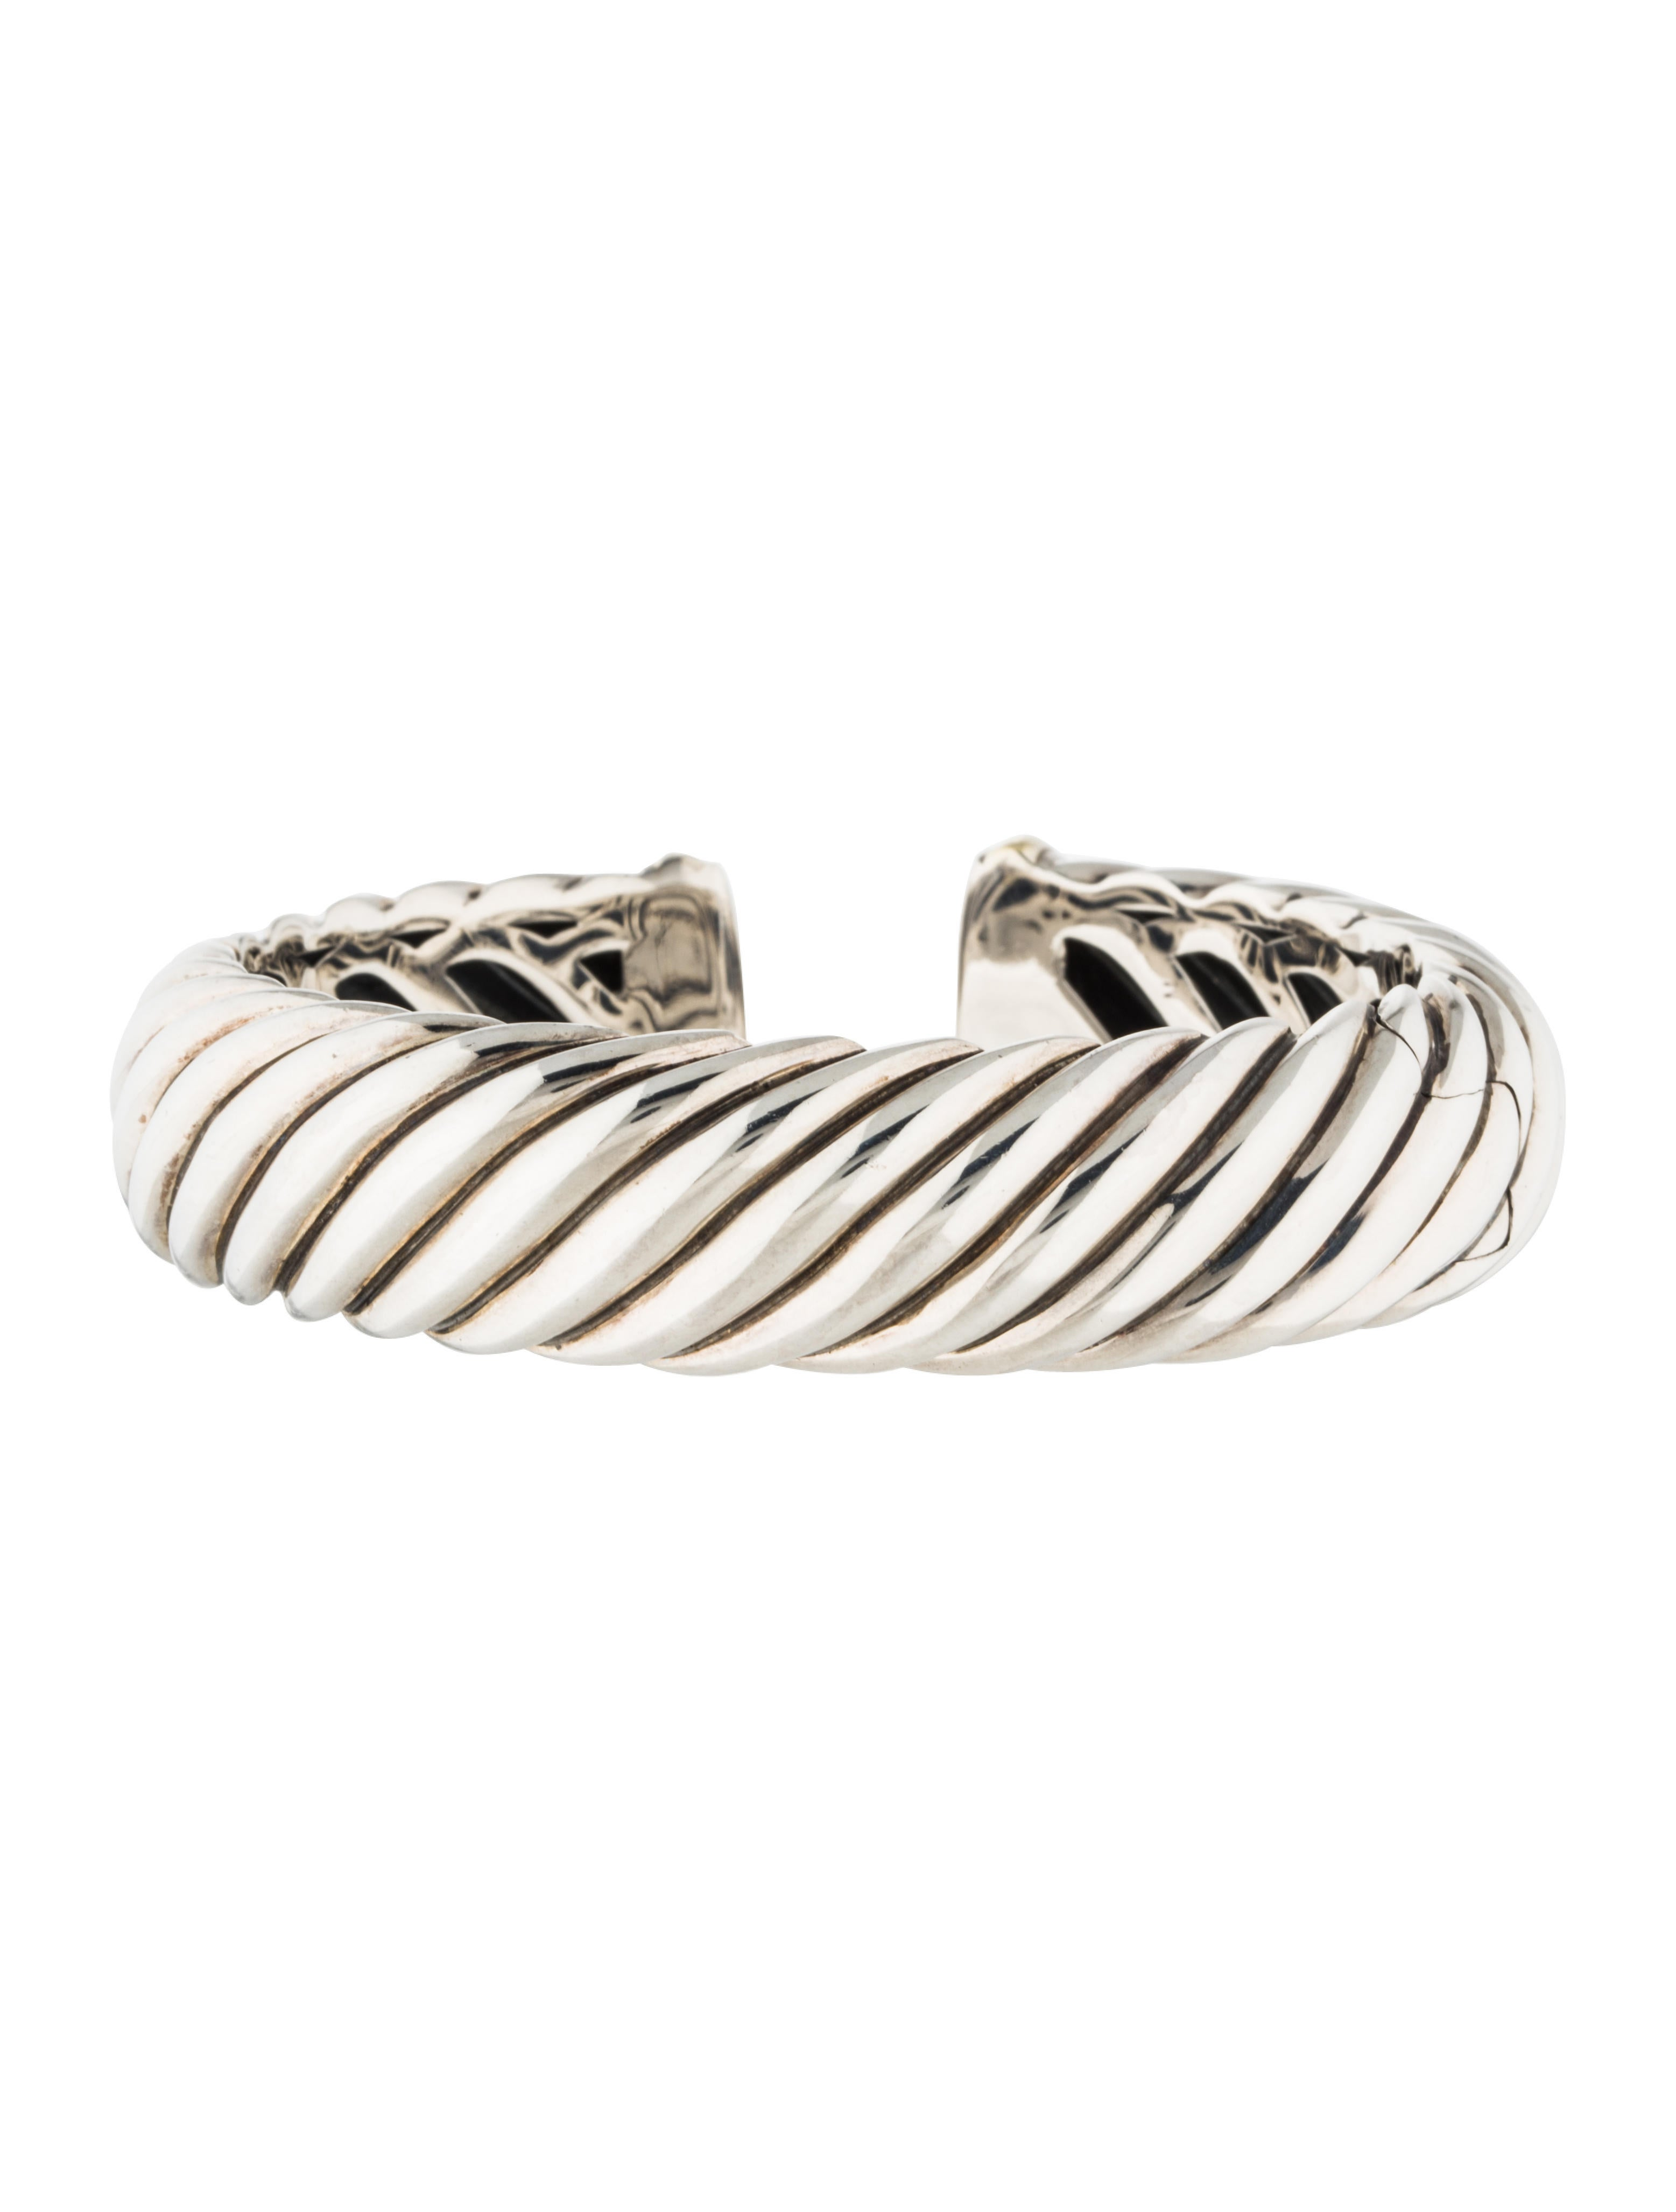 David yurman sculpted cable bracelet bracelets for David yurman inspired bracelet cable